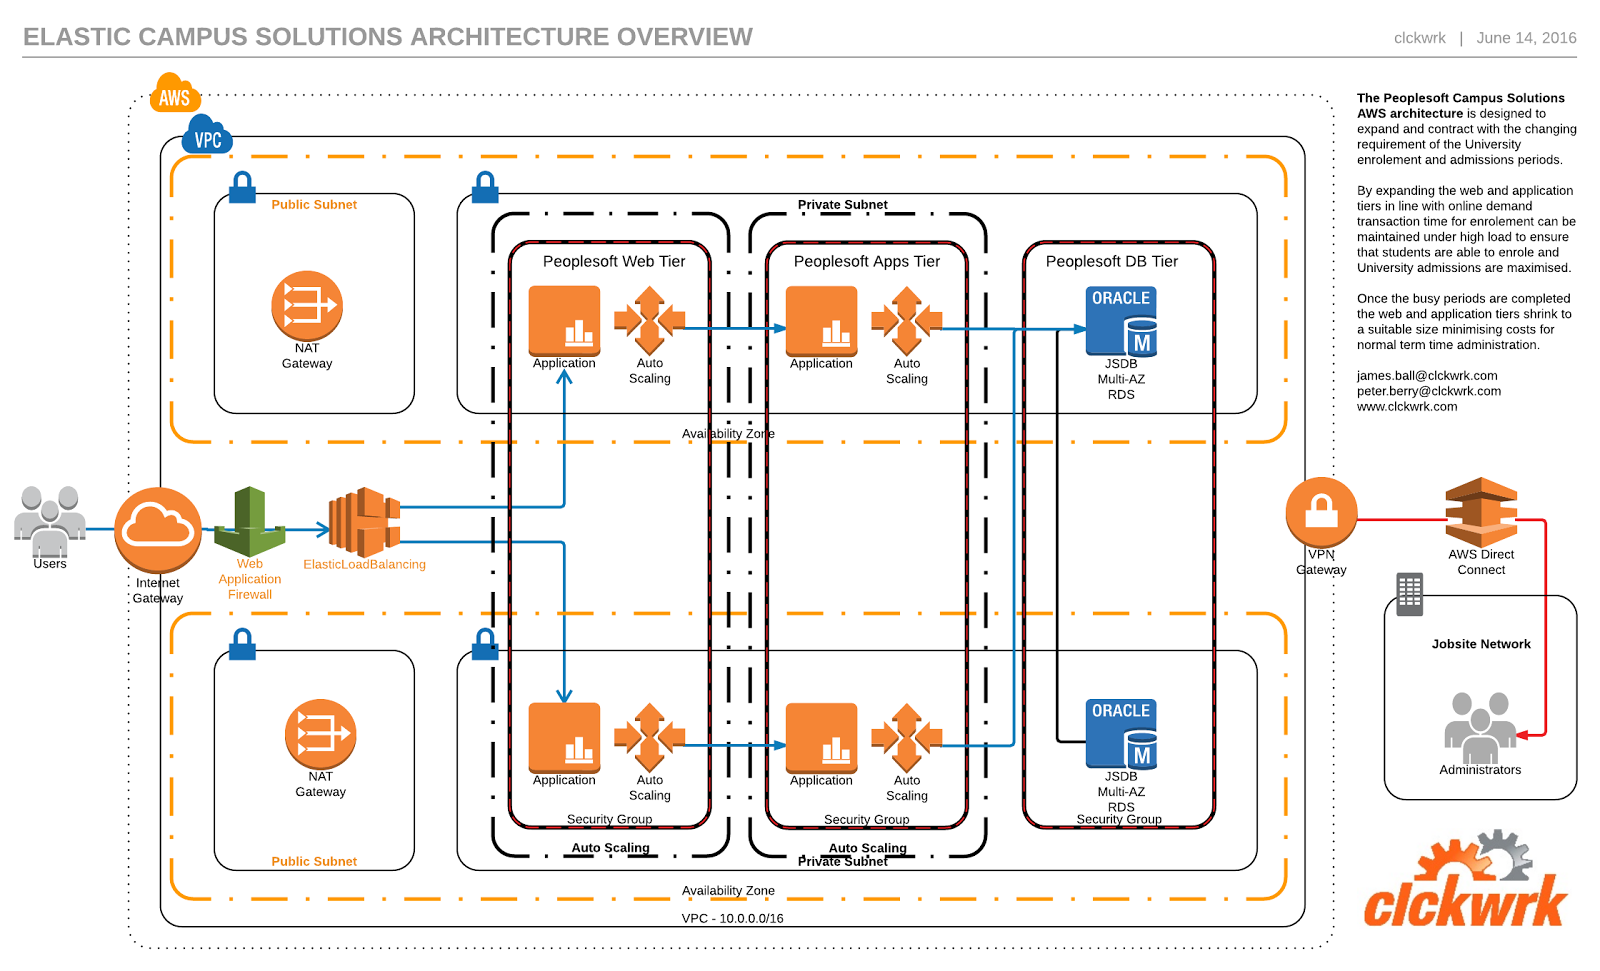 Clckwrk design blueprint peoplesoft campus solutions on aws availability campus solutions needs a high availability infrastructure to ensure that both the administrative and student users can access data at all malvernweather Choice Image